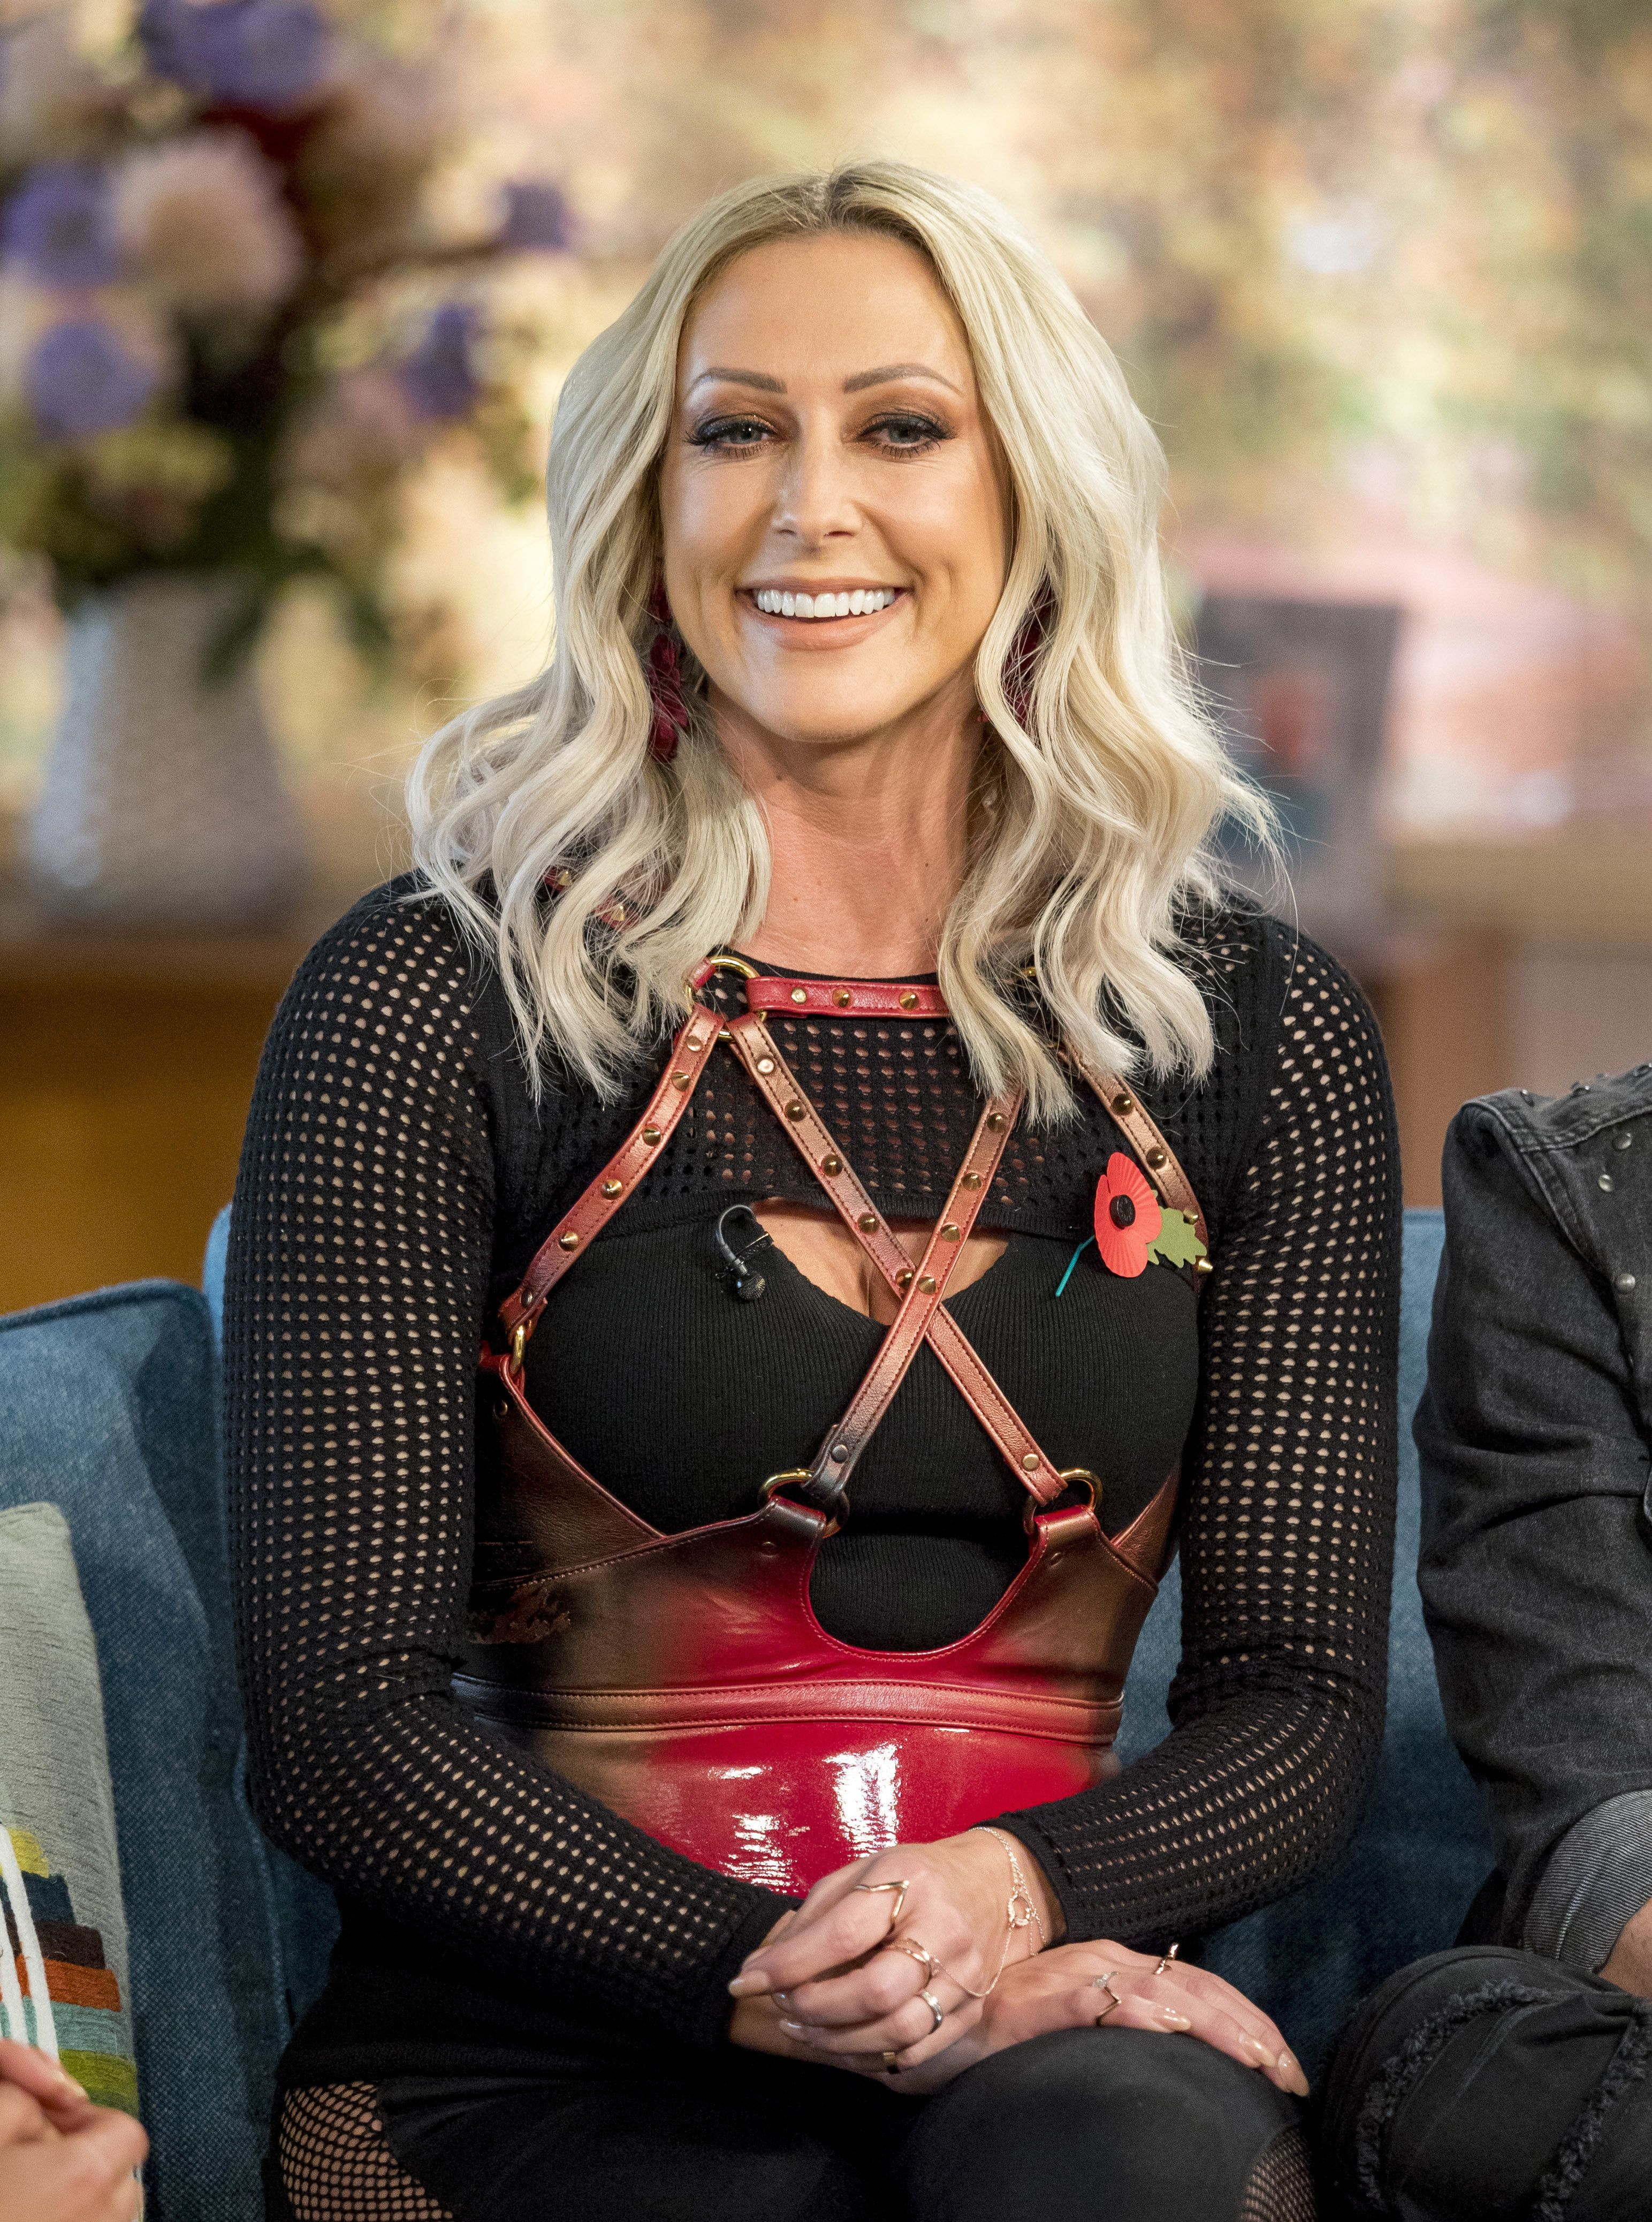 Faye Tozer And Danny John-Jules Are The Latest Celebs Confirmed For The New Series Of